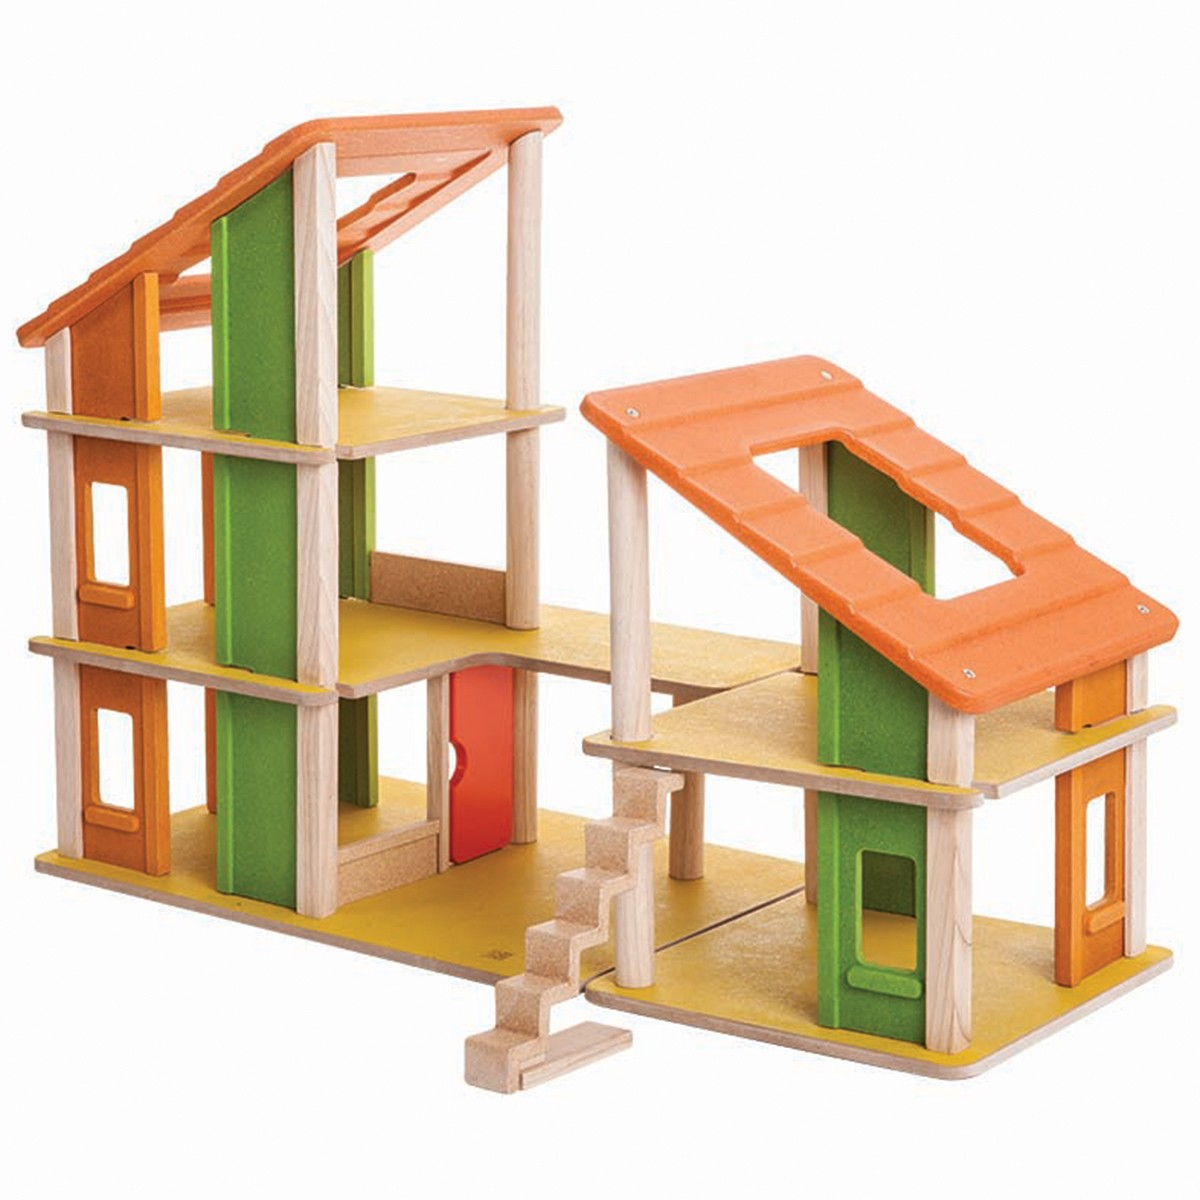 Wooden Toy Plans Catalog : Plan toys chalet dolls house